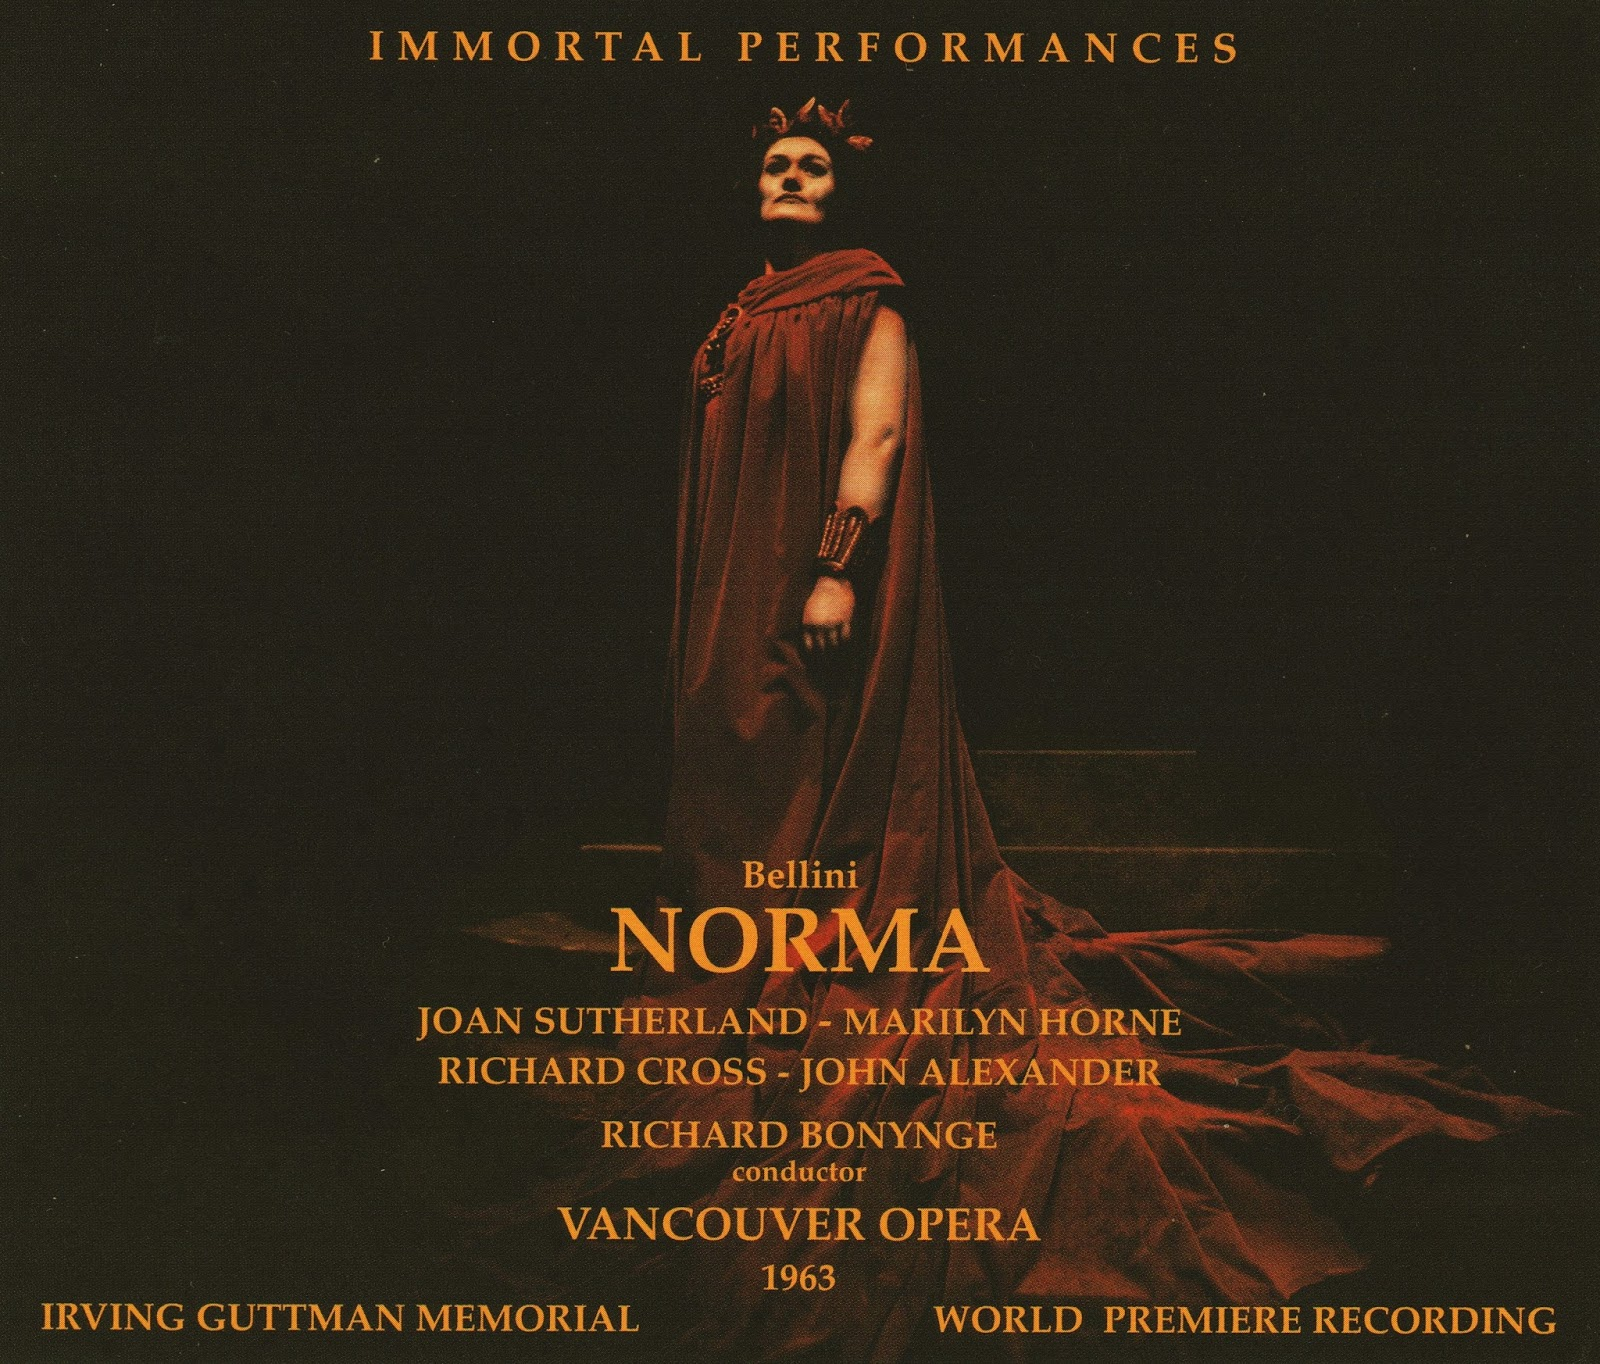 REASON FOR CELEBRATION IN GAUL: Vincenzo Bellini - NORMA (Immortal Performances IPCD 1055-3)